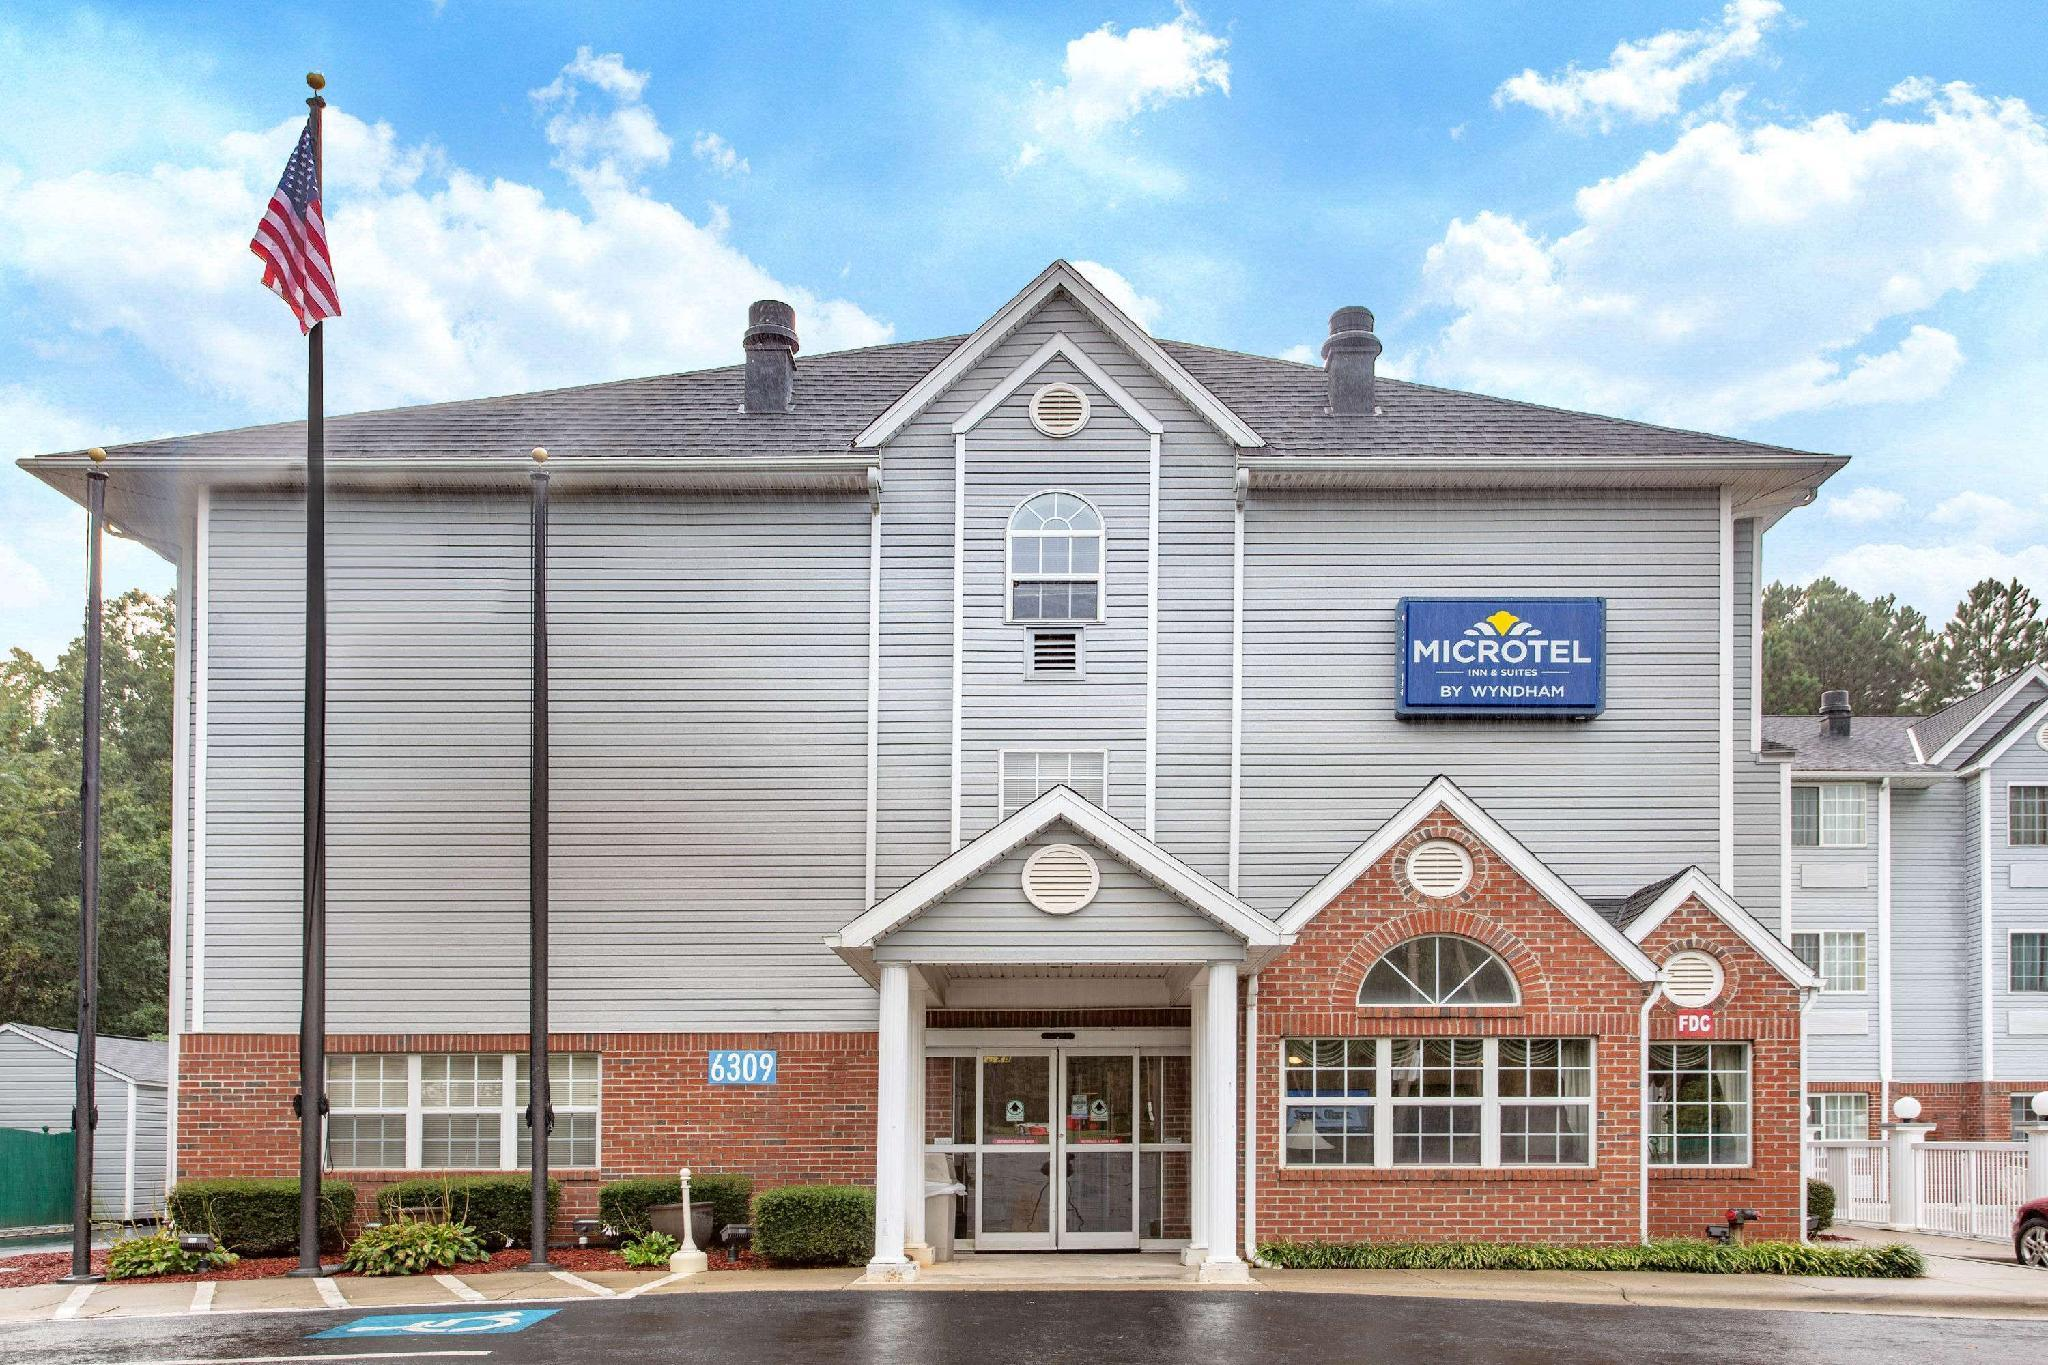 Microtel Inn And Suites By Wyndham Charlotte Northlake